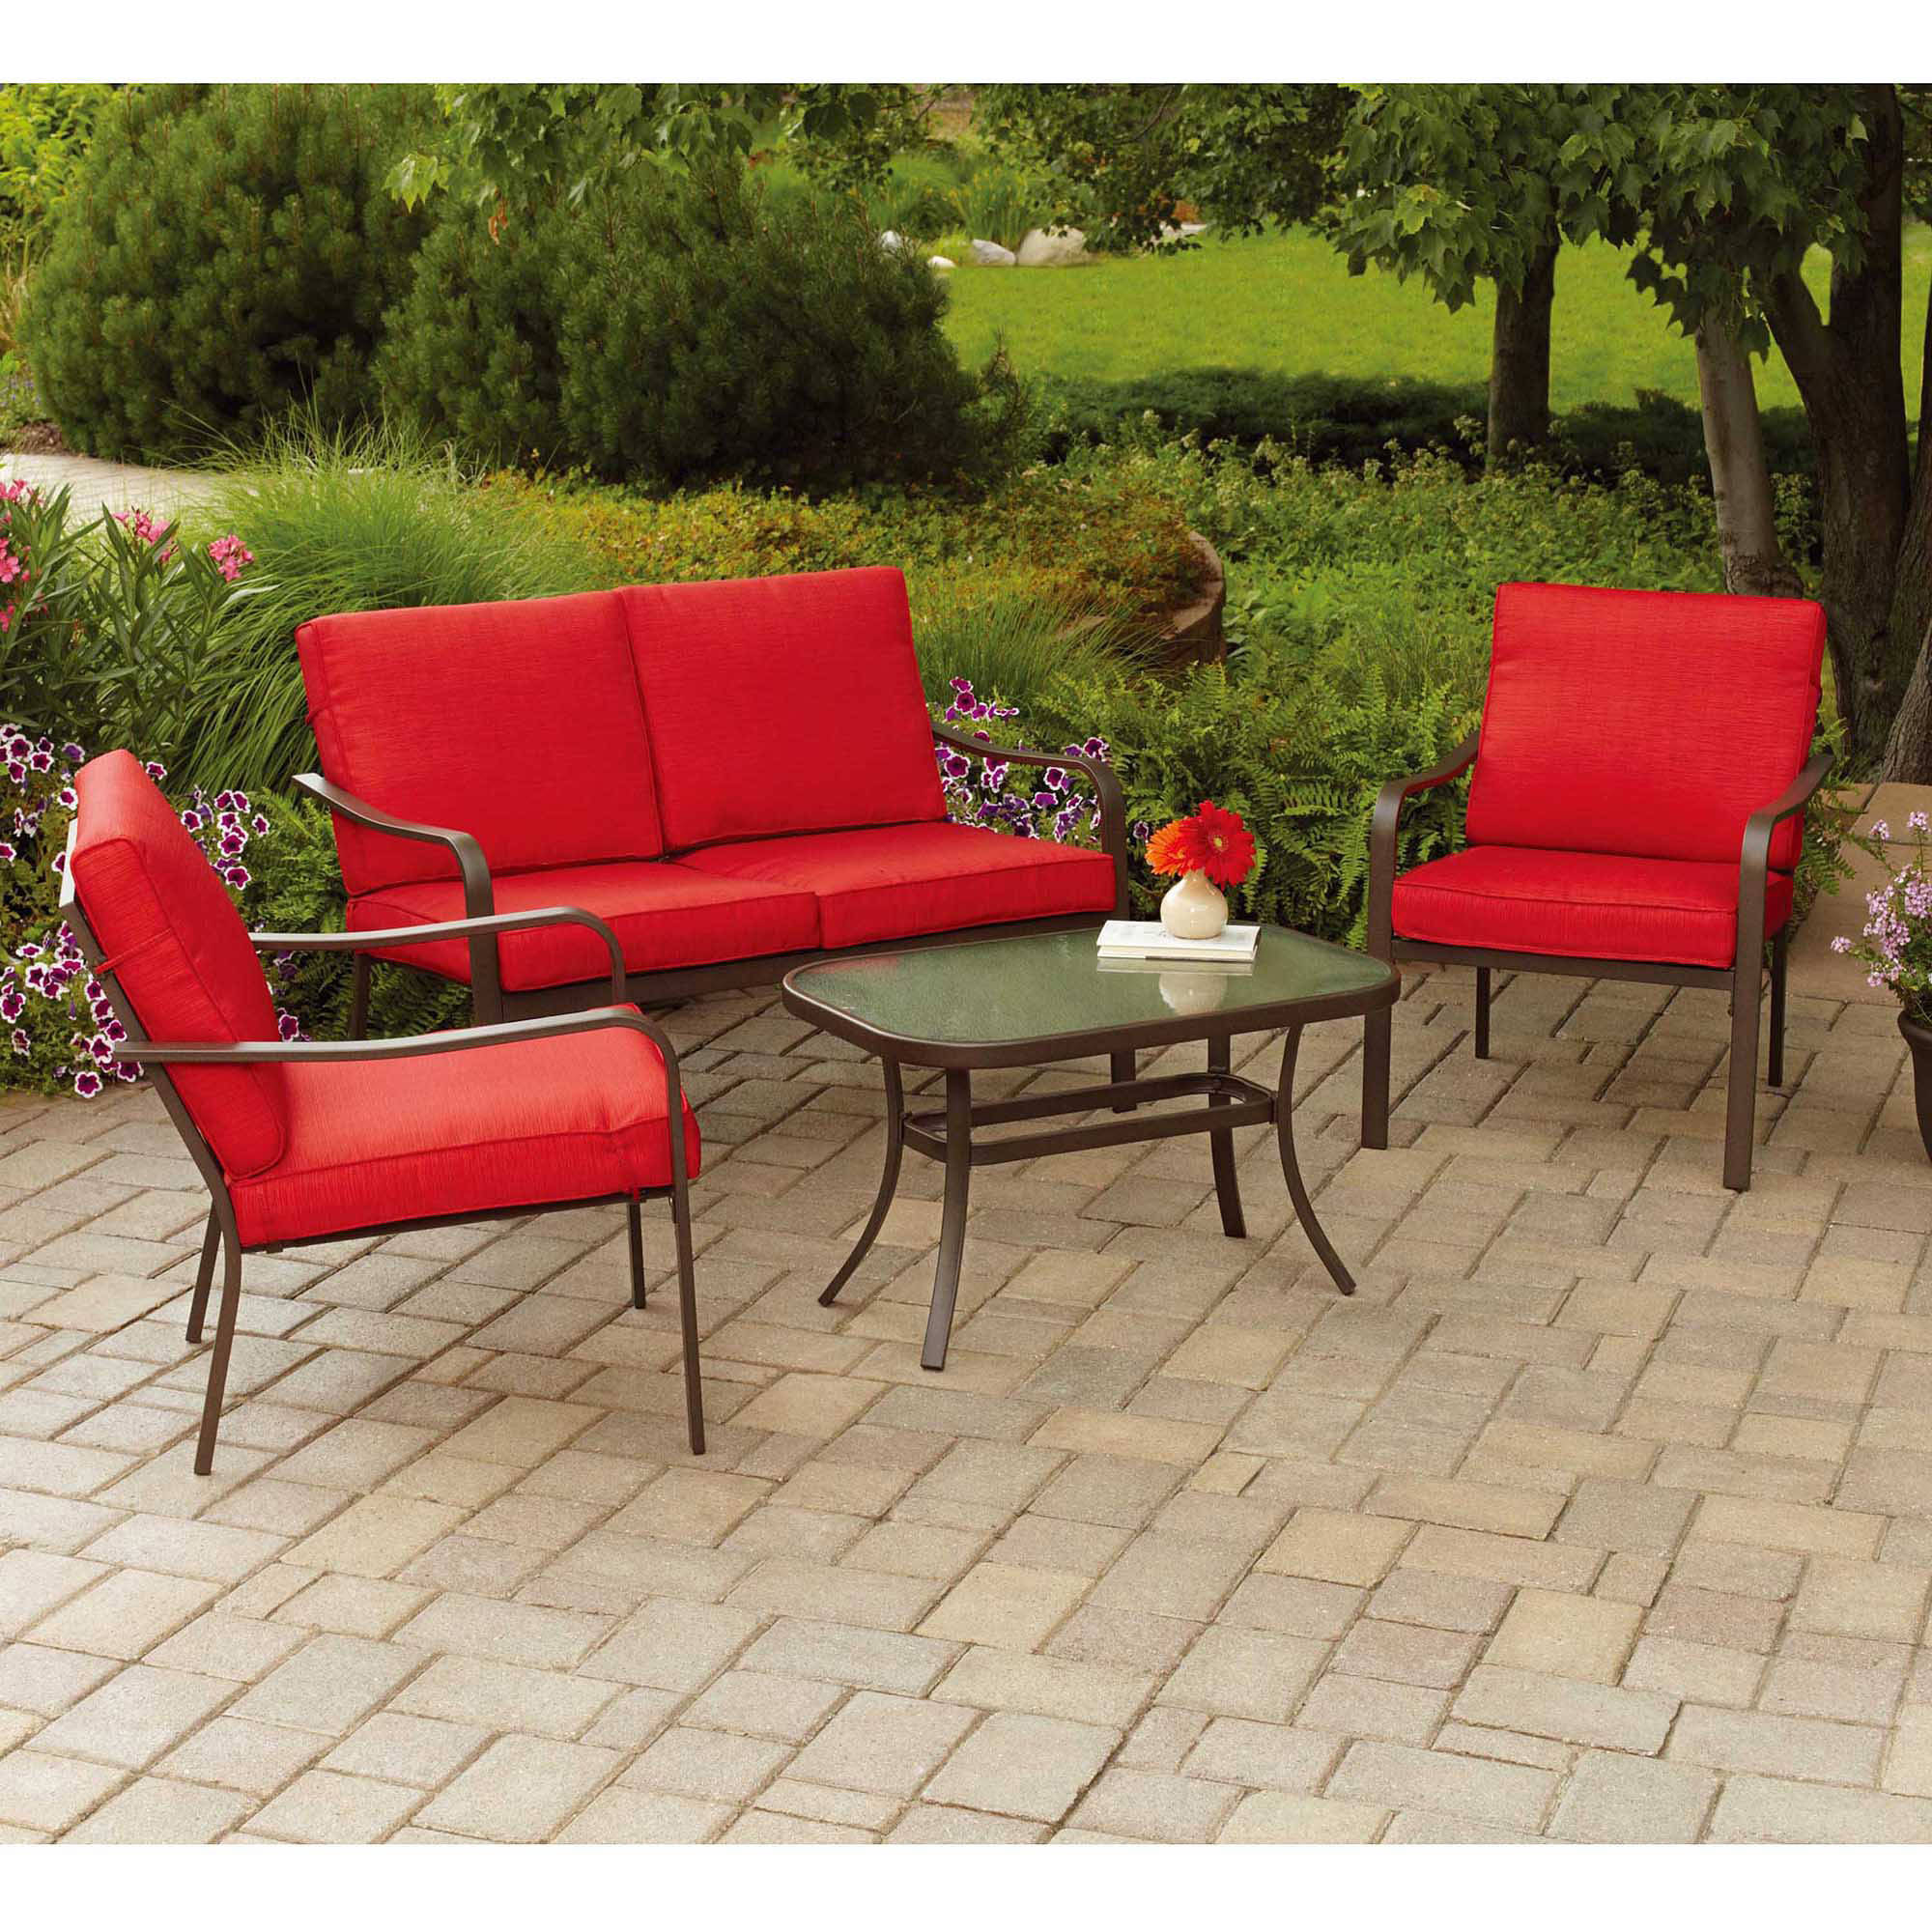 Wonderful Mainstays Stanton Cushioned 4 Piece Patio Conversation Set, Red